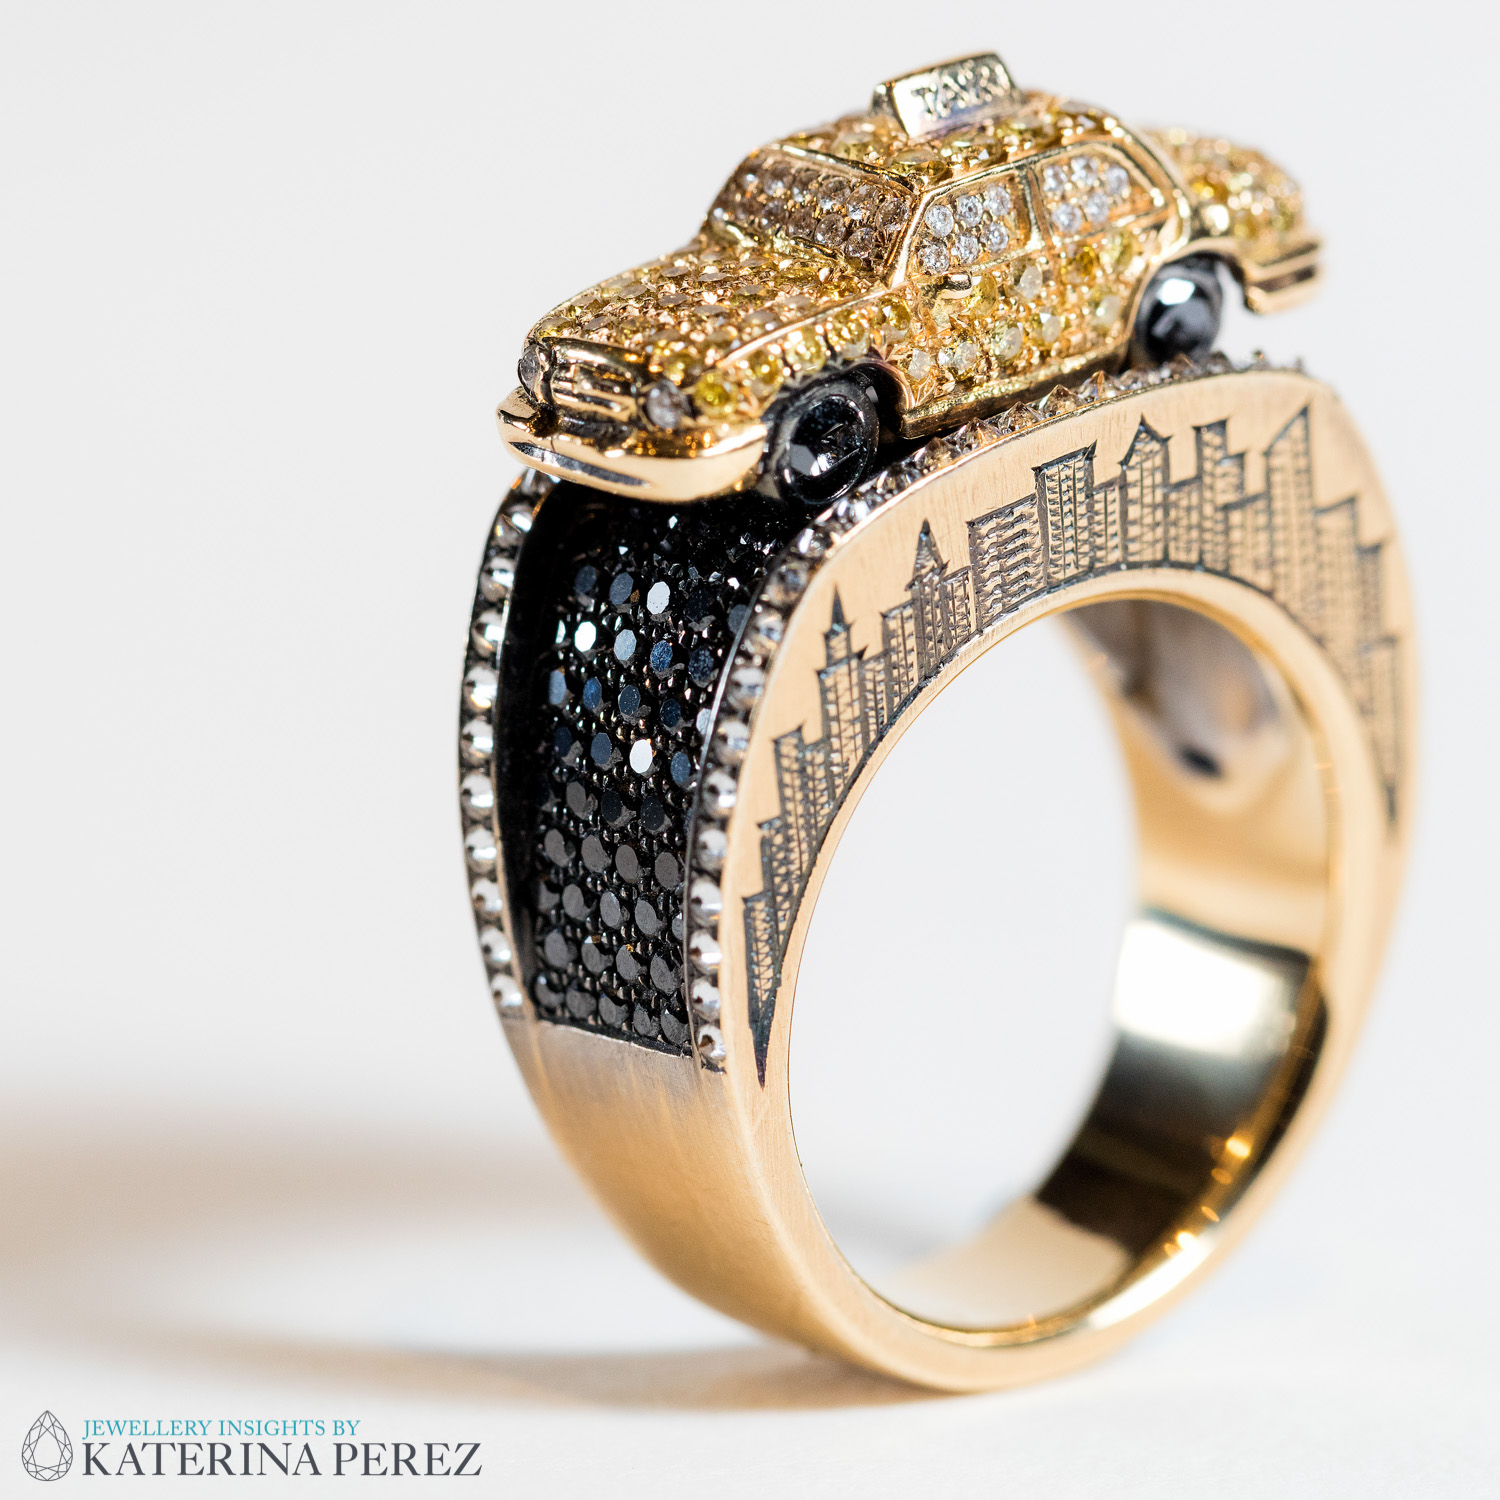 Wendy Brandes New York Taxi ring from the Maneater collection. Photo credit: Simon Martner for katerinaperez.com